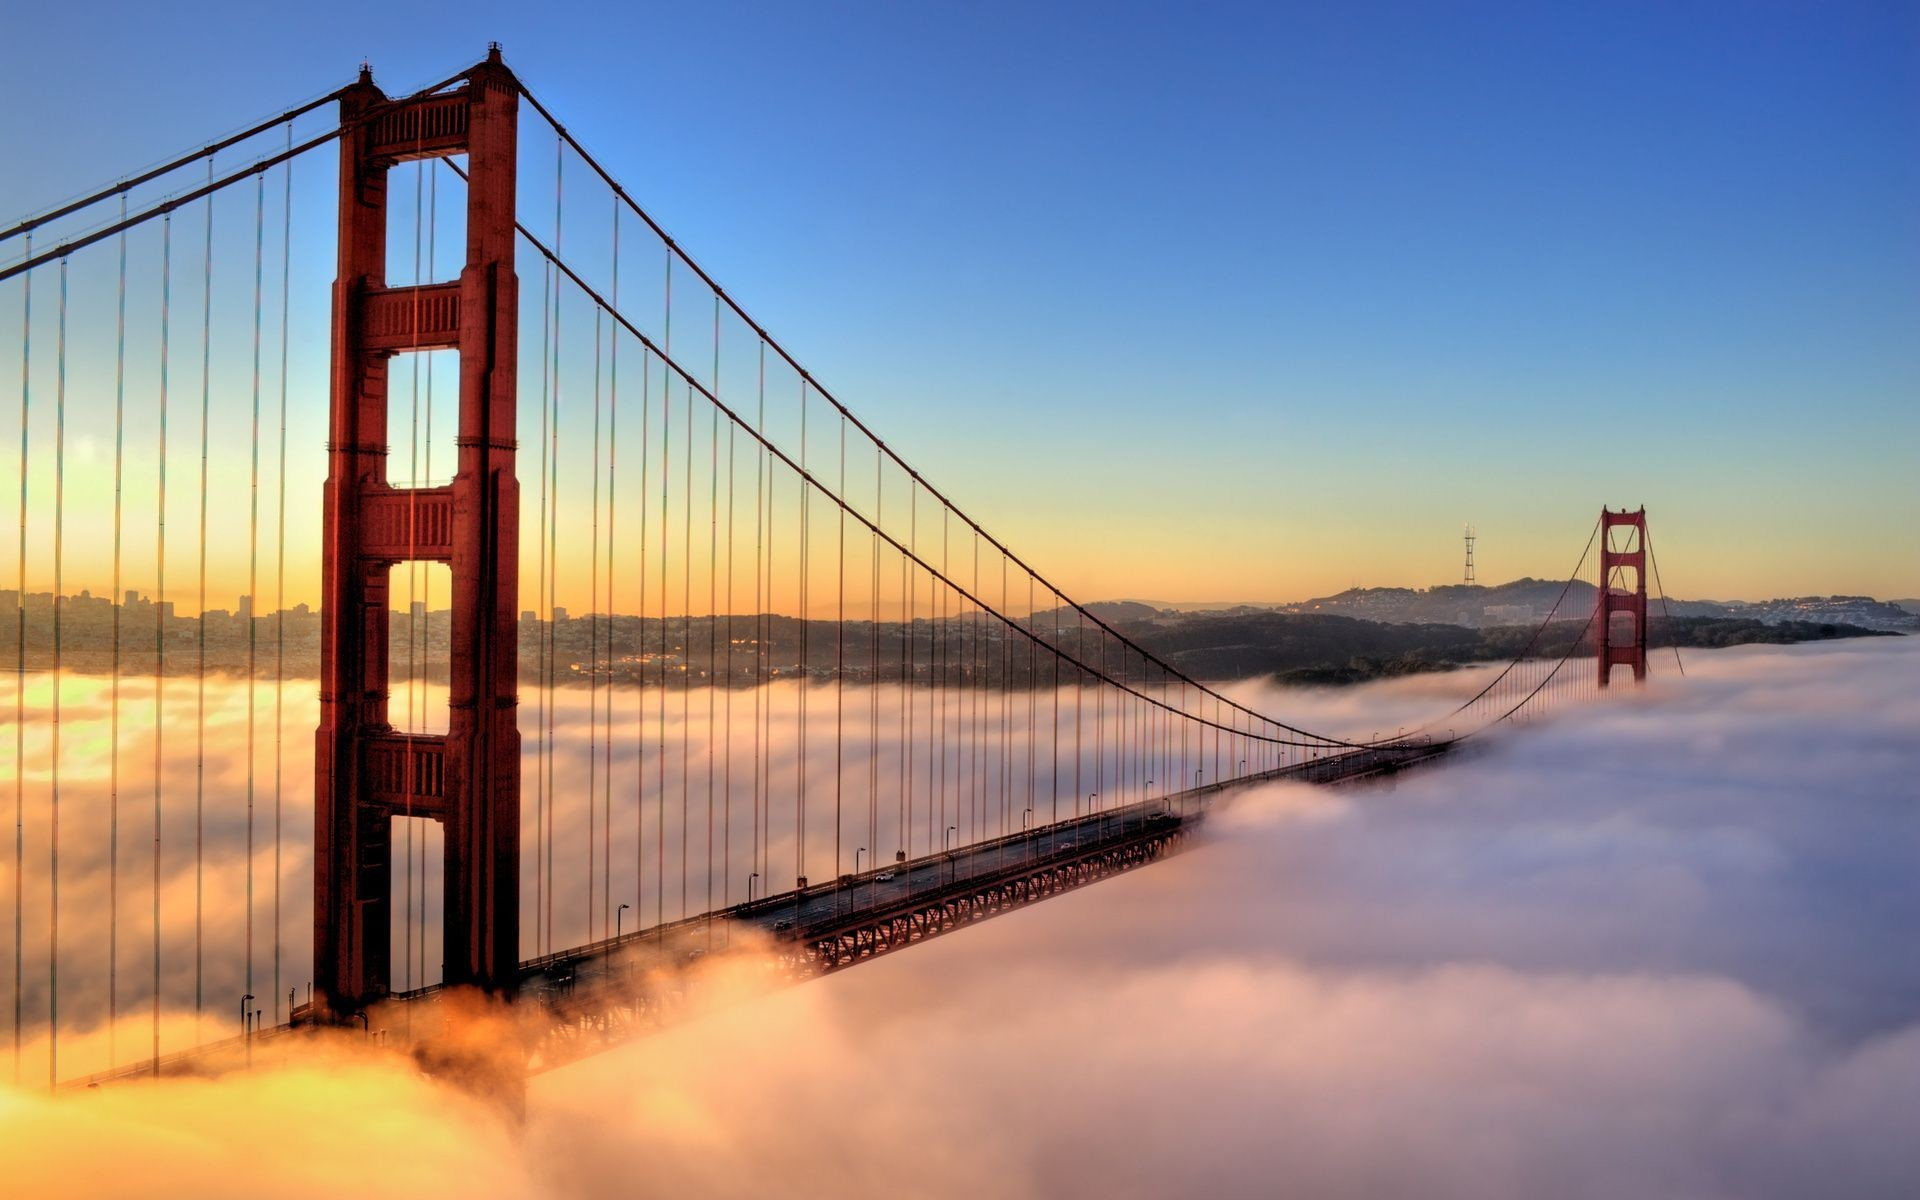 San Francisco Desktop Wallpapers Hd Wallpapers Hd Backgrounds Tumblr Backgrounds Images Pictures